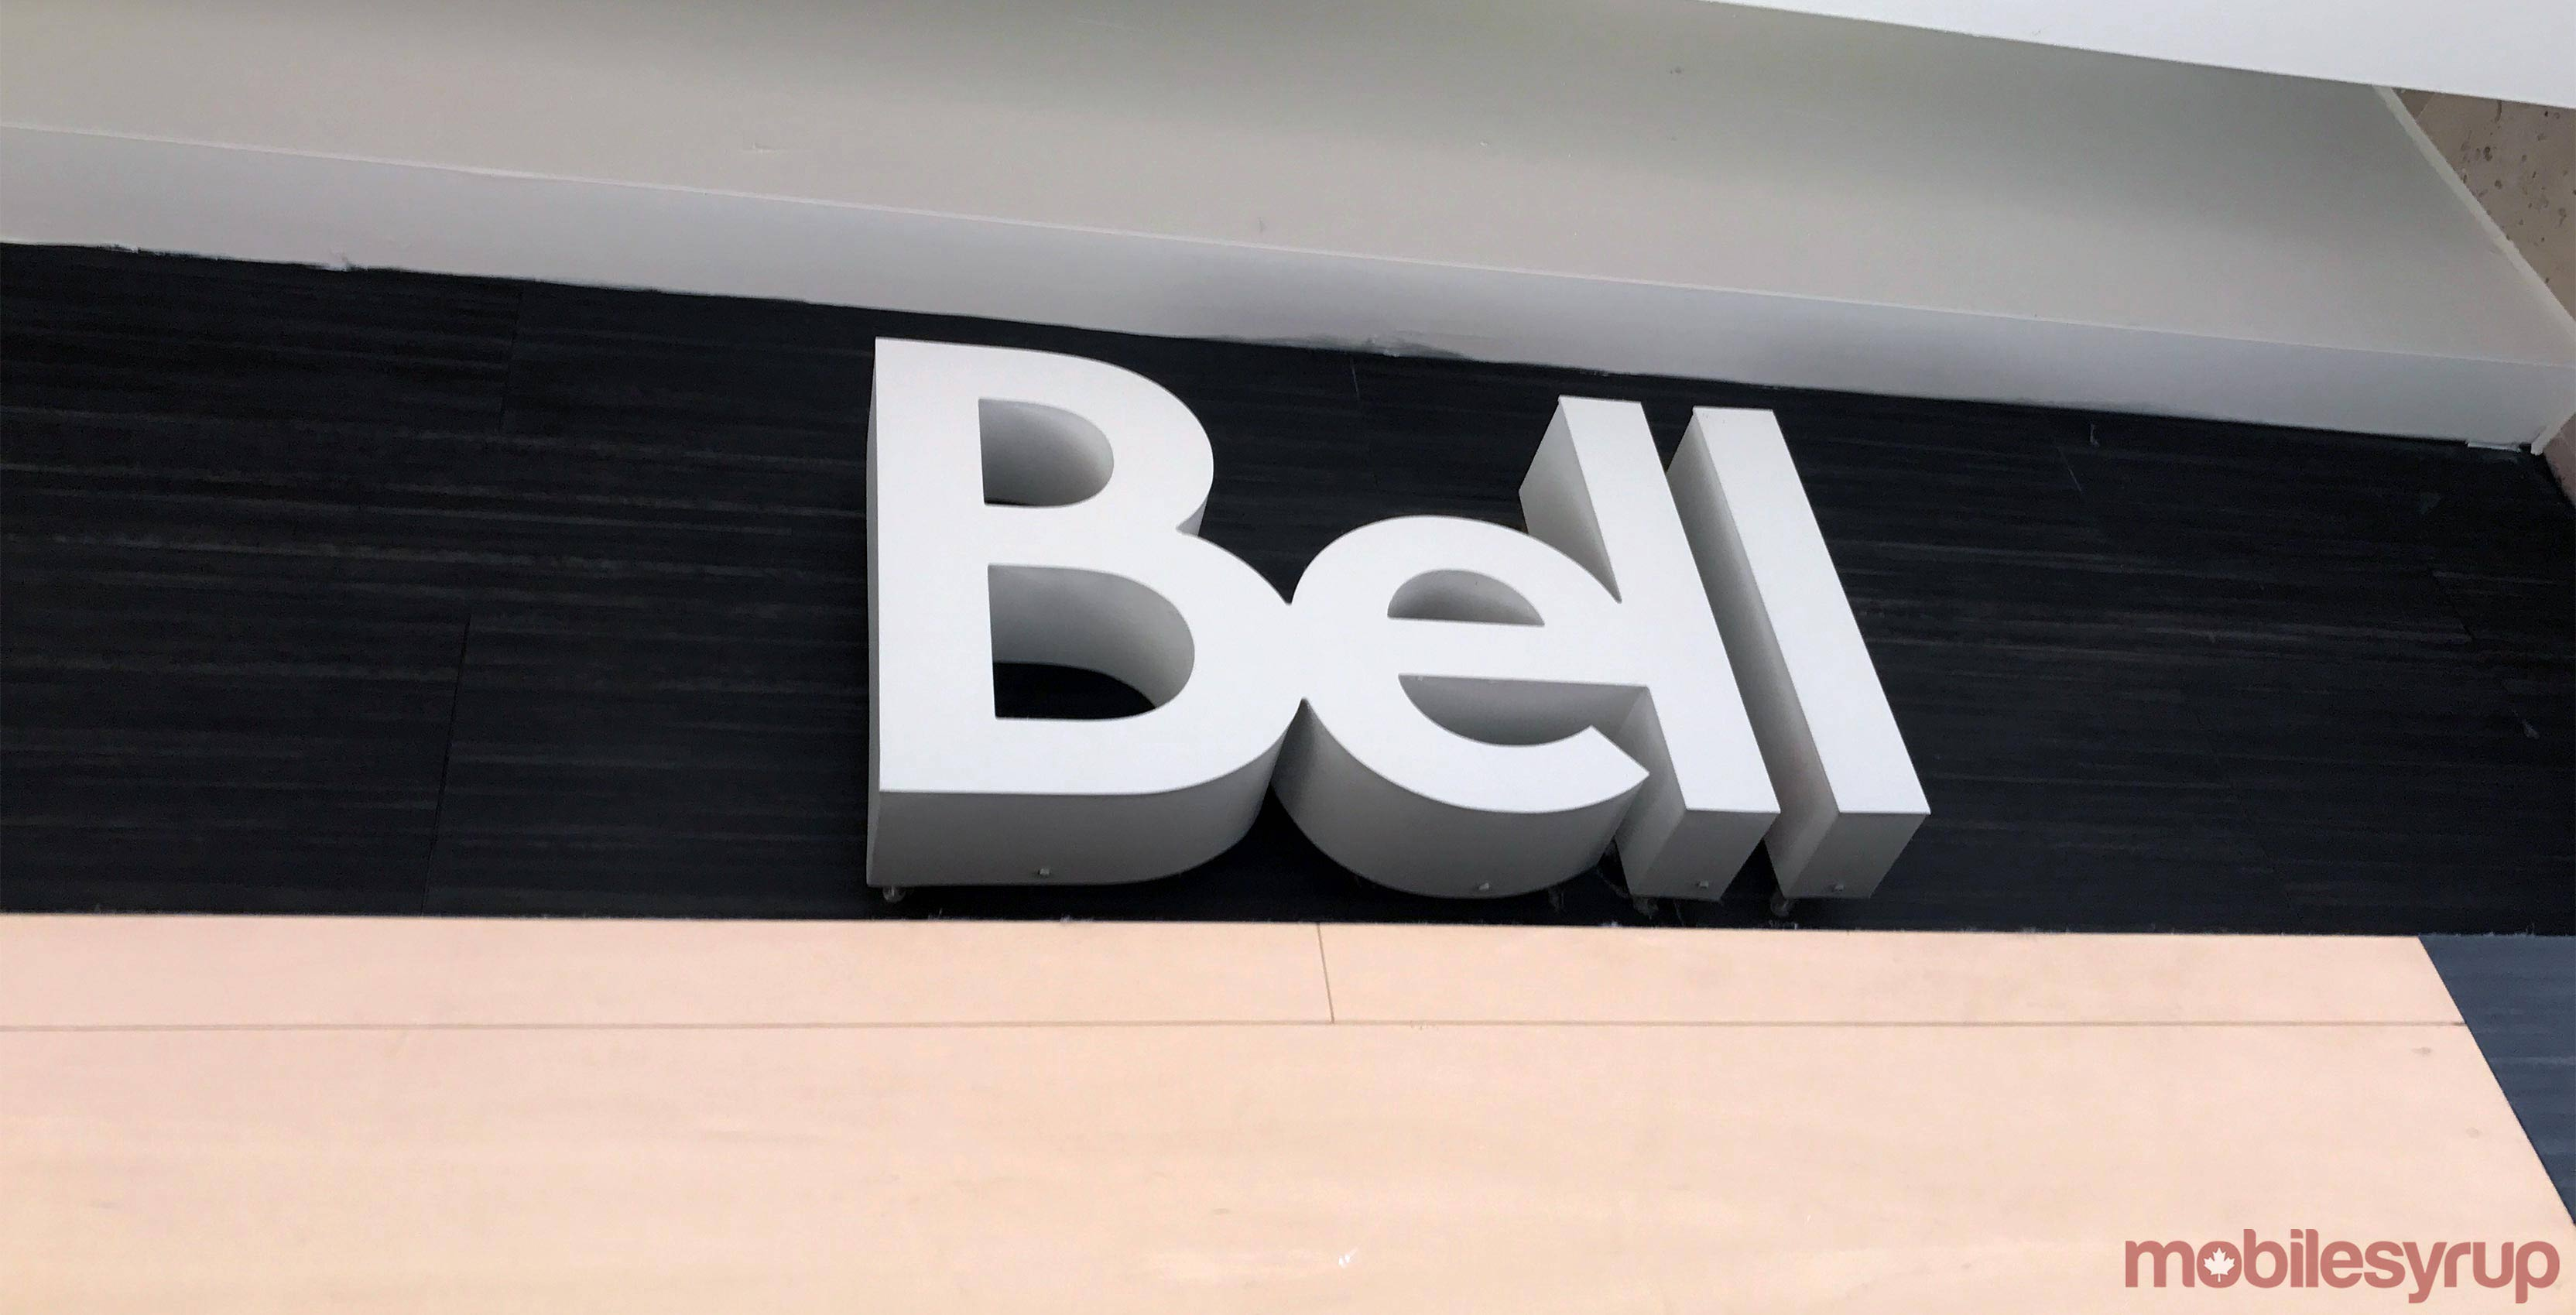 Bell employees are pressured into upselling products and